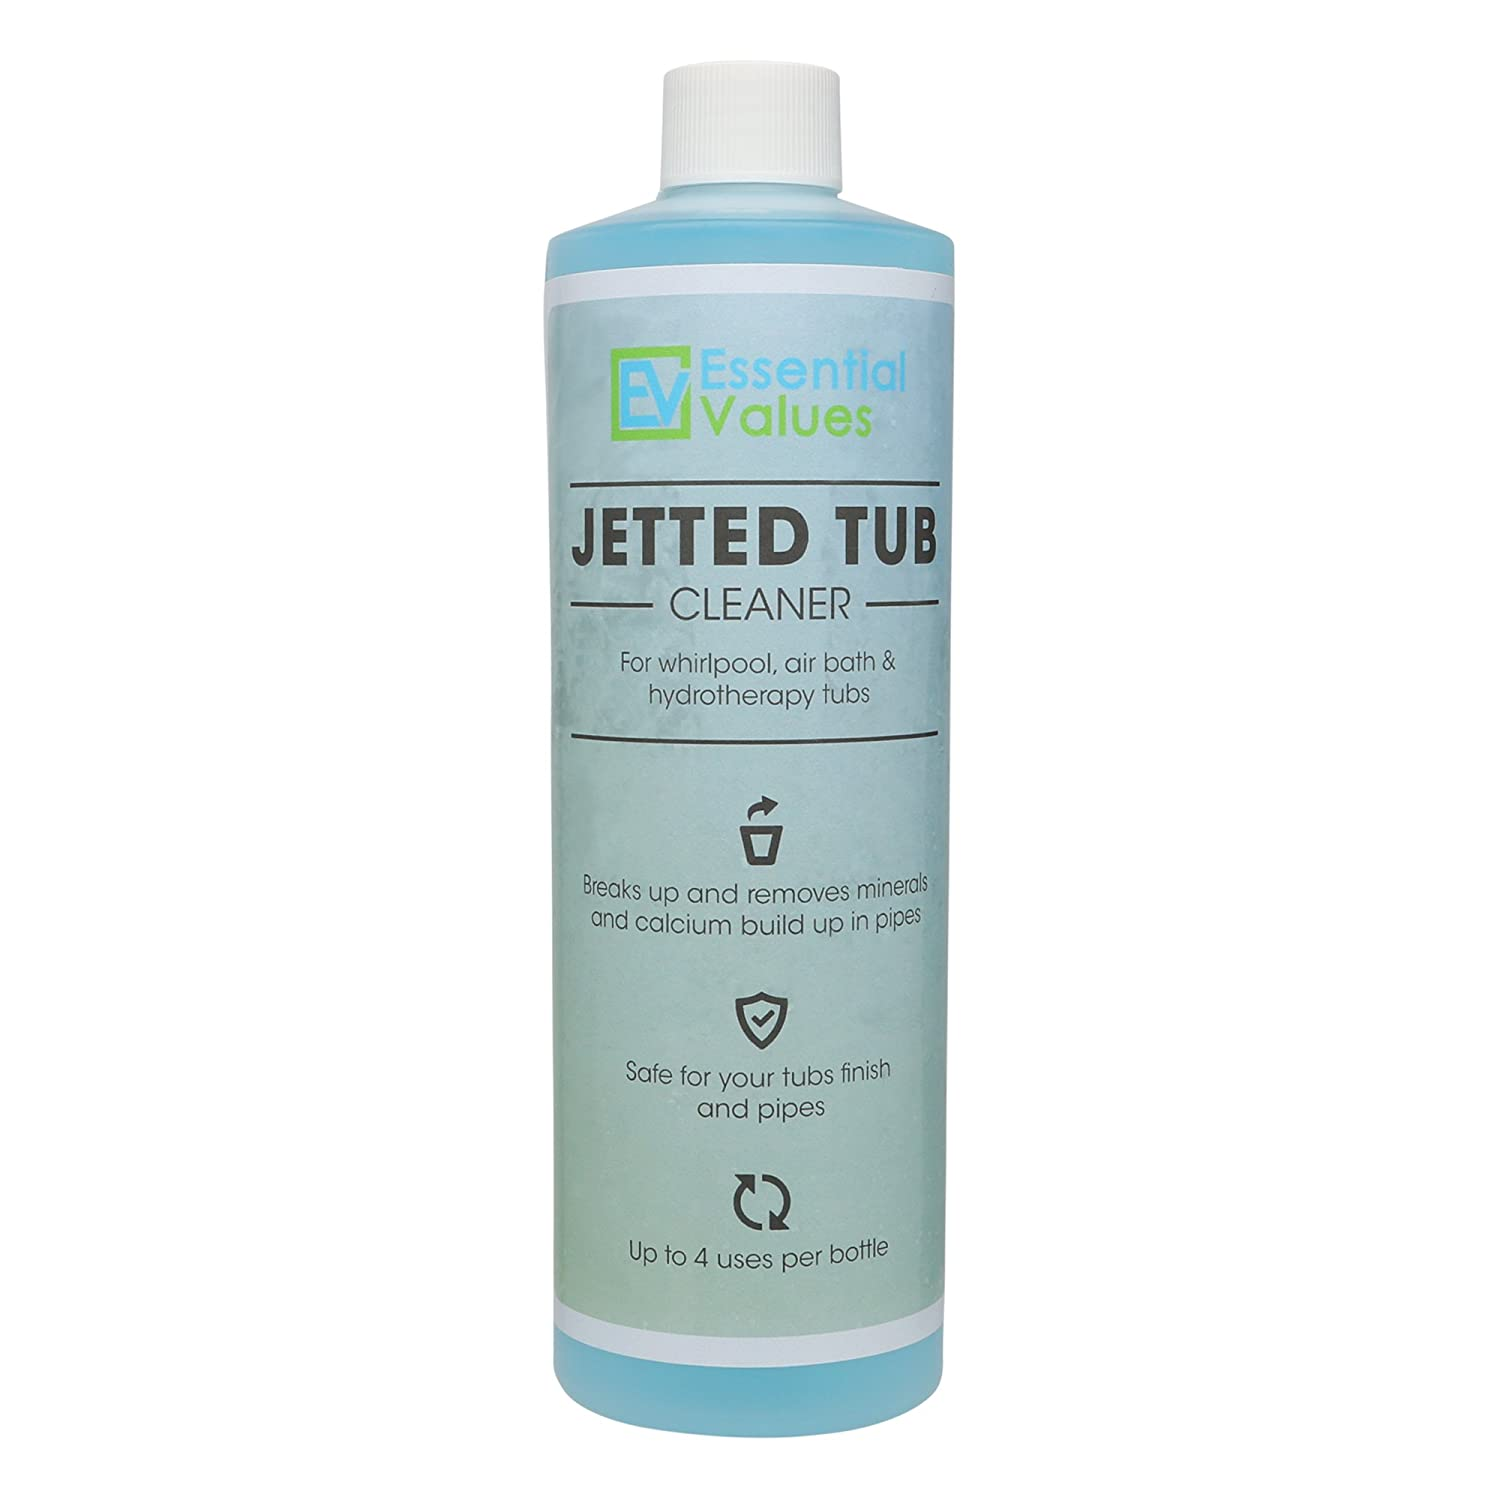 Amazon.com: Jetted Tub Cleaner, Whirlpool Tub Cleaner (16oz / 4 uses ...